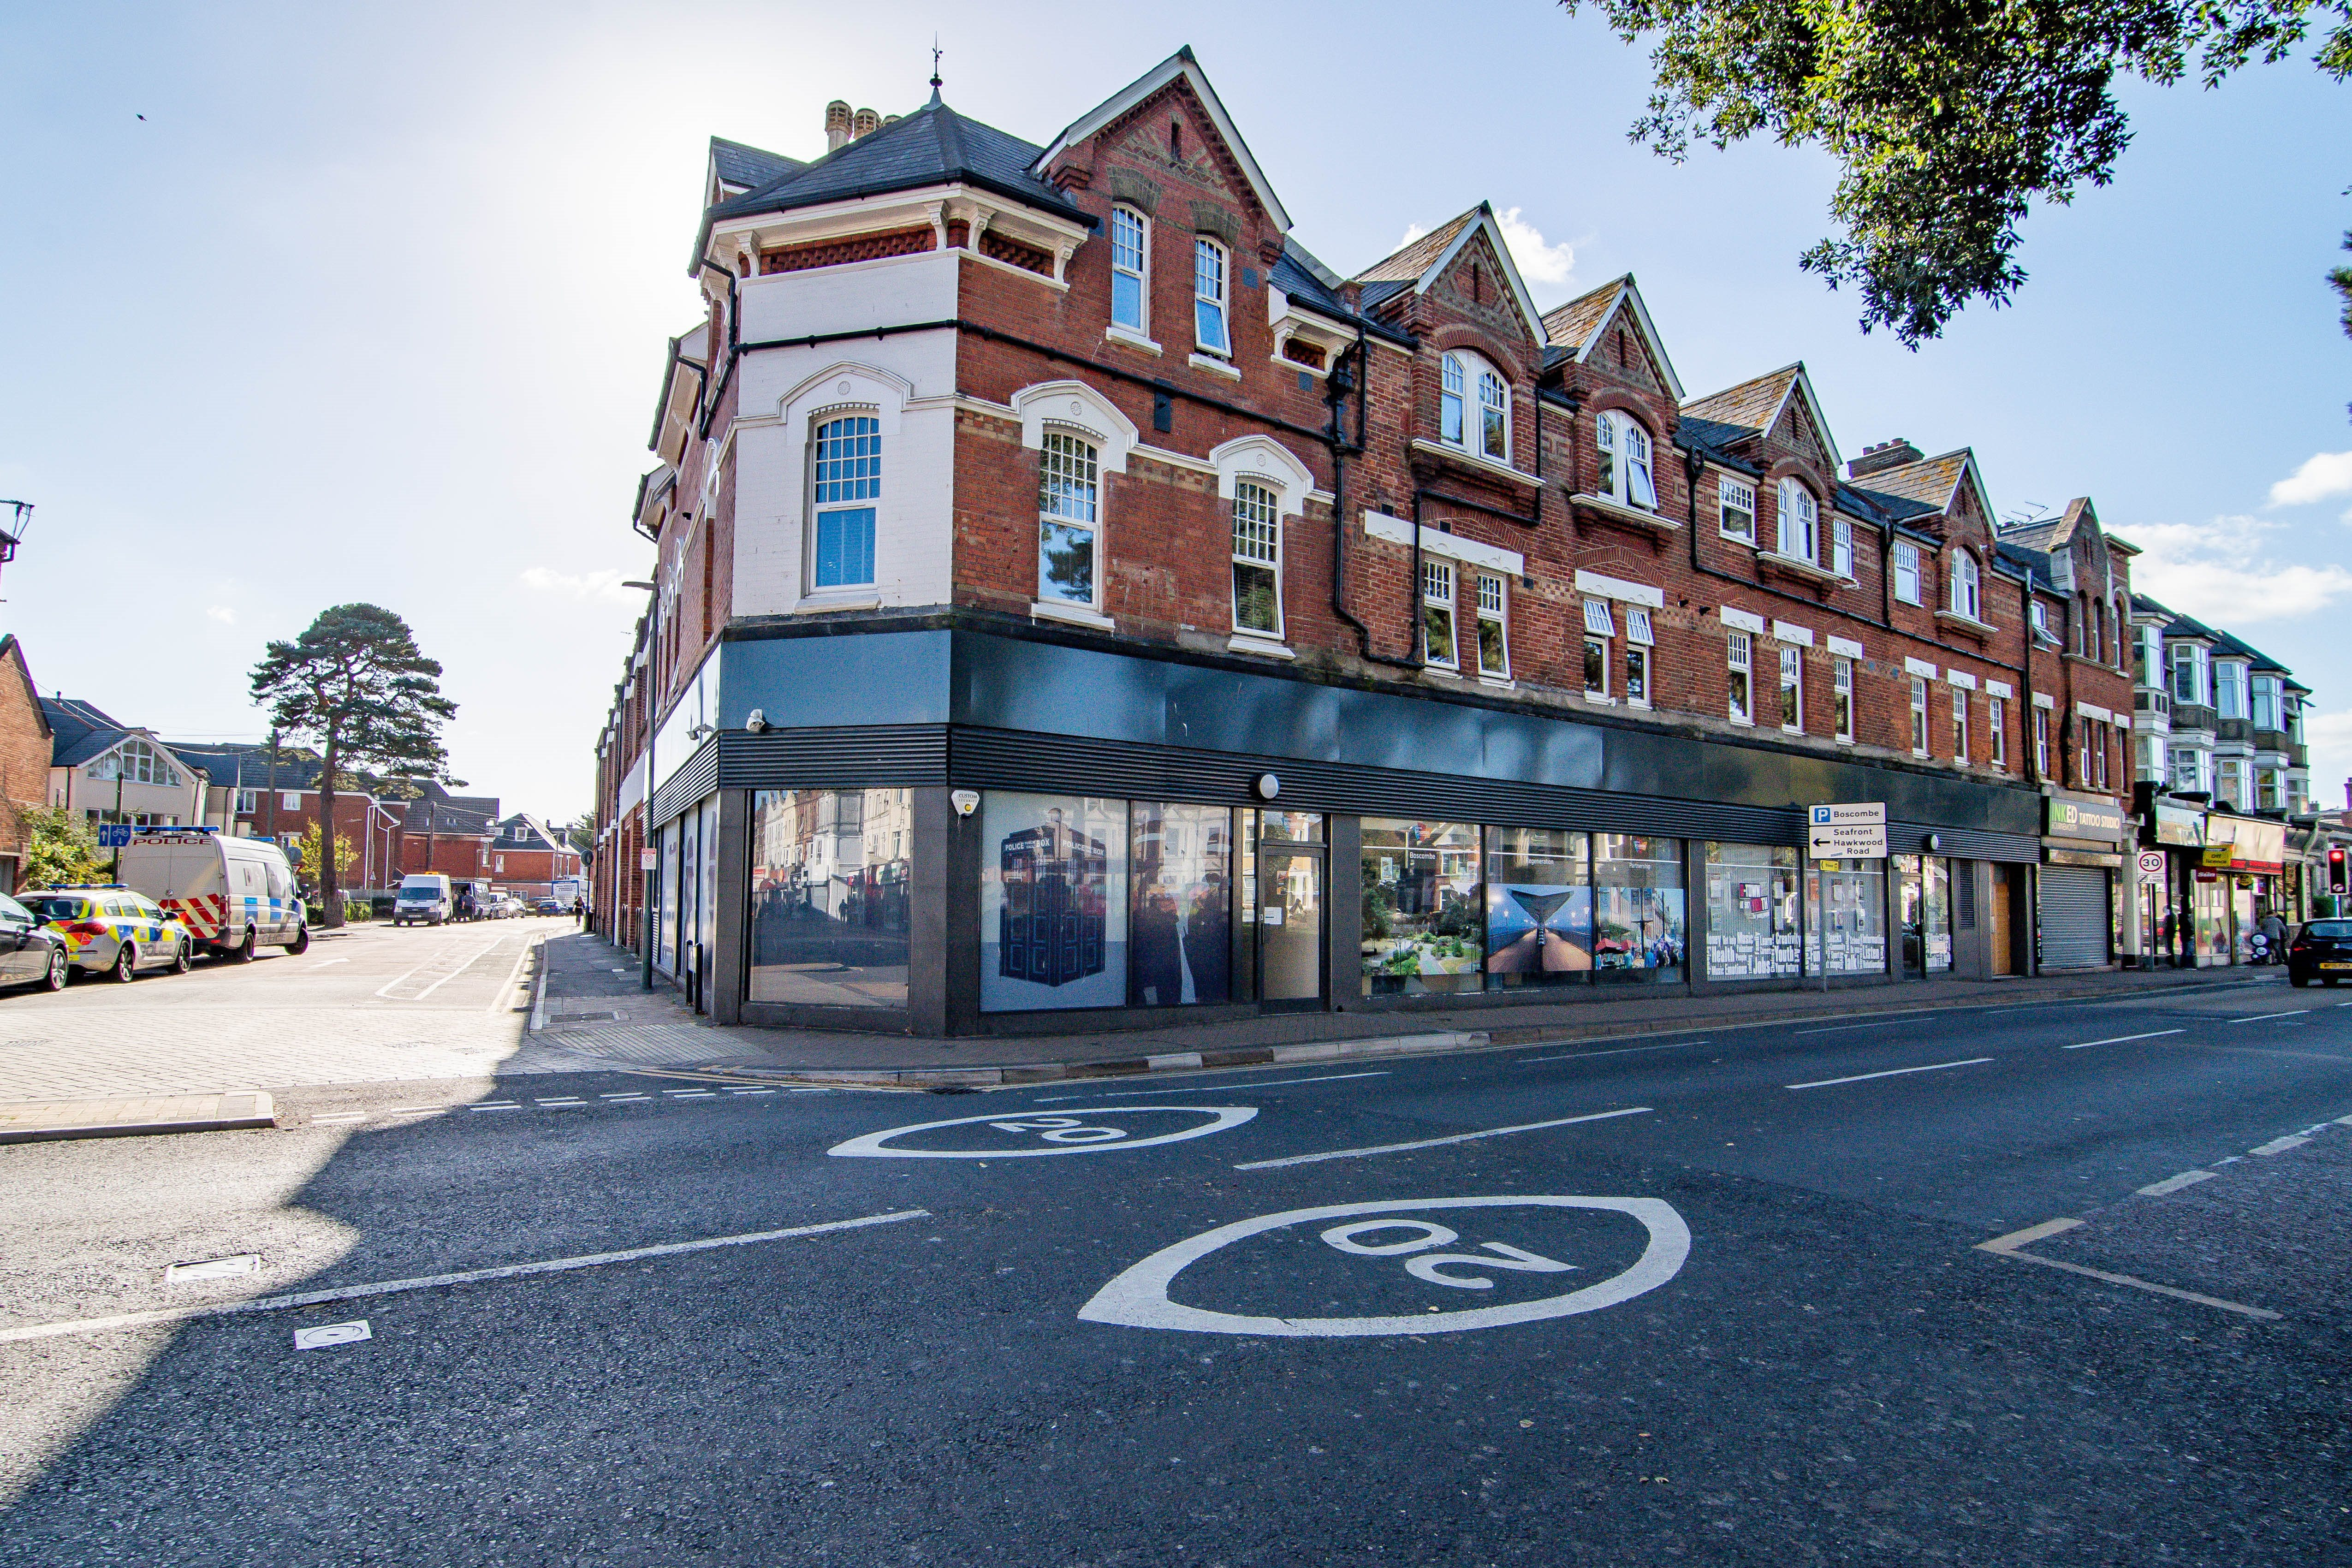 Christopher Shaw Residential is pleased to bring to the market this unique and quirky modern one-bedroom flat in the popular Cotton Exchange development, available to investors or first-time buyers, with vacant possession, and no forward chain.